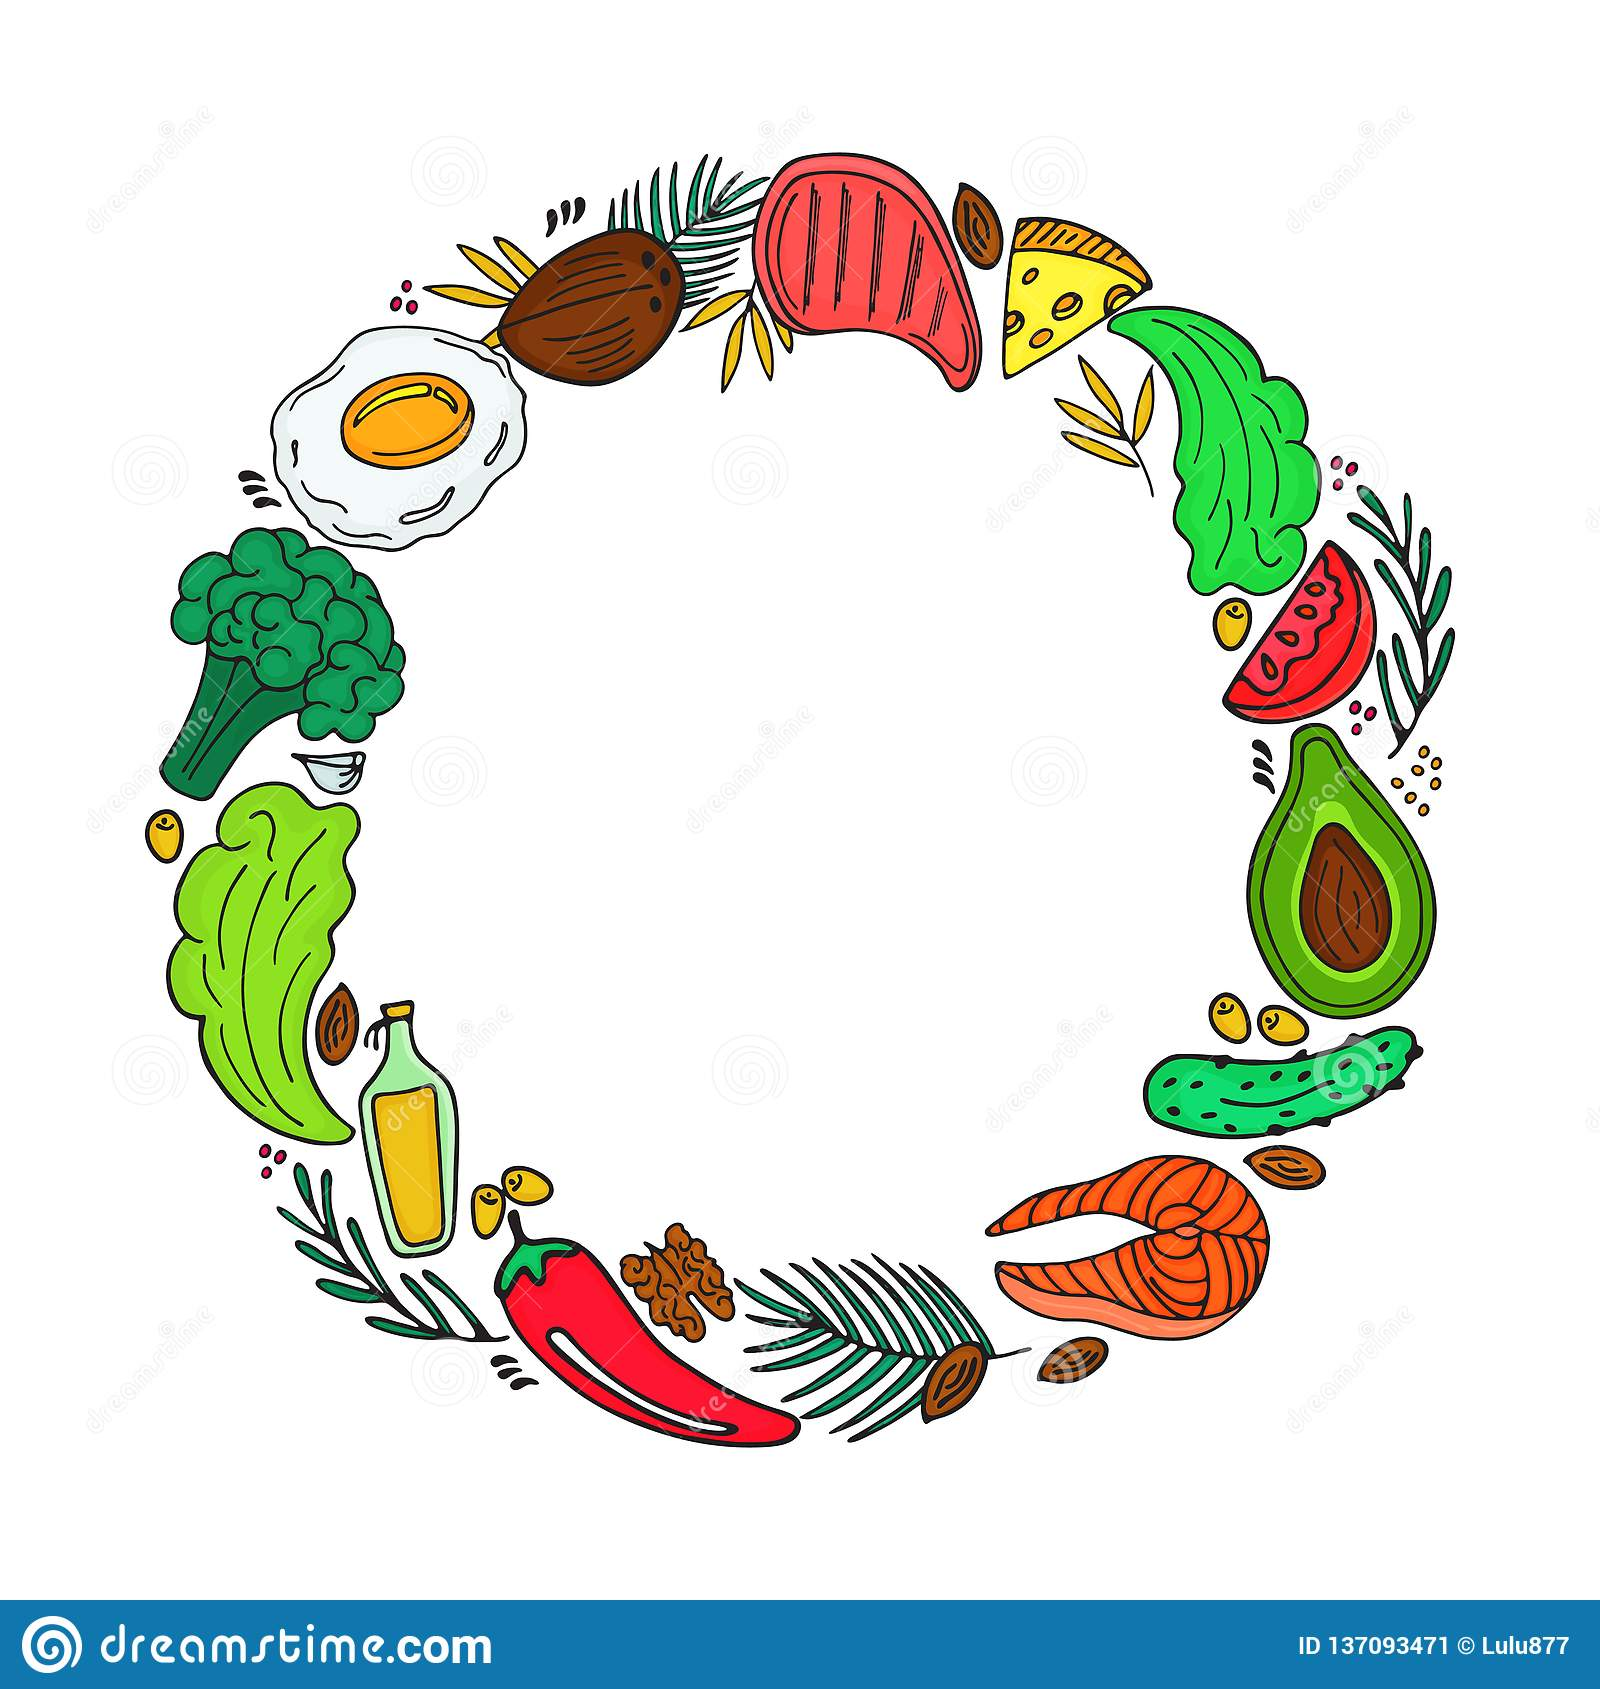 Ketogenic diet round frame in doodle style. Low carb dieting. Organic vegetables, nuts and other healthy foods